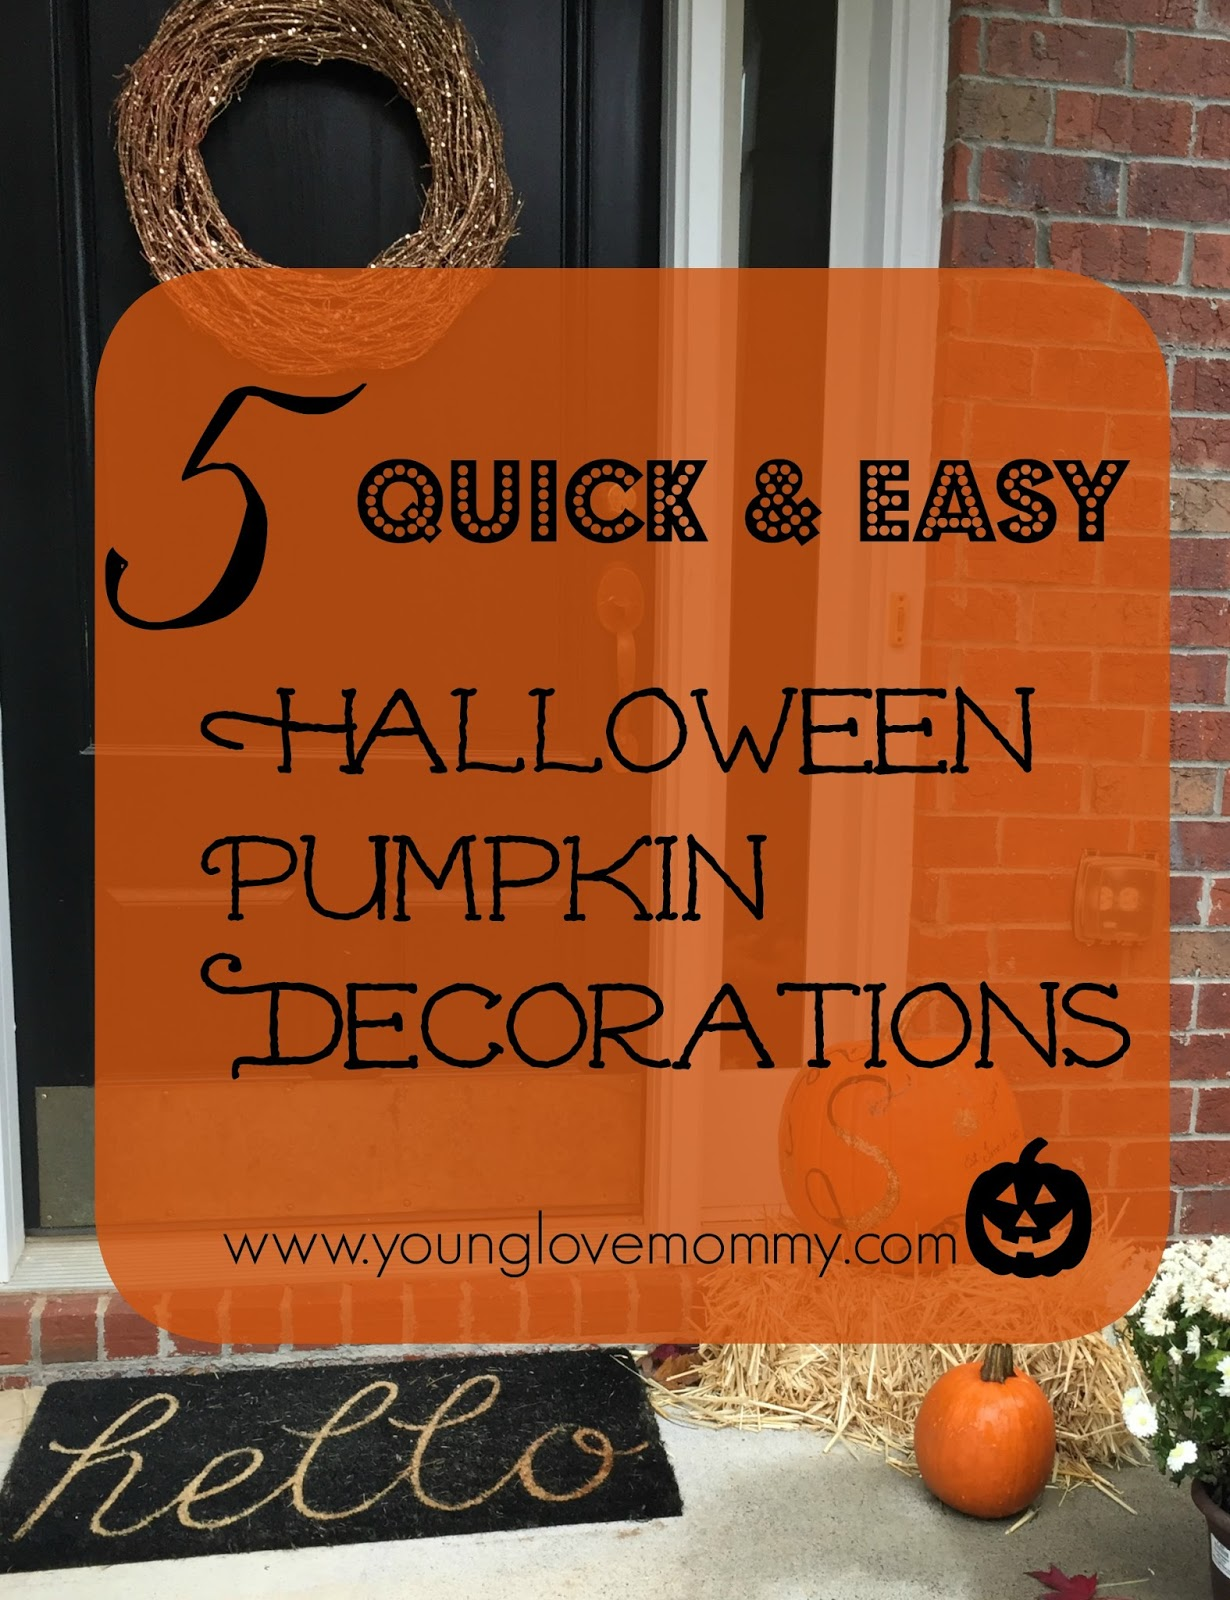 Pumpkin decoration Archives | Young Love Mommy